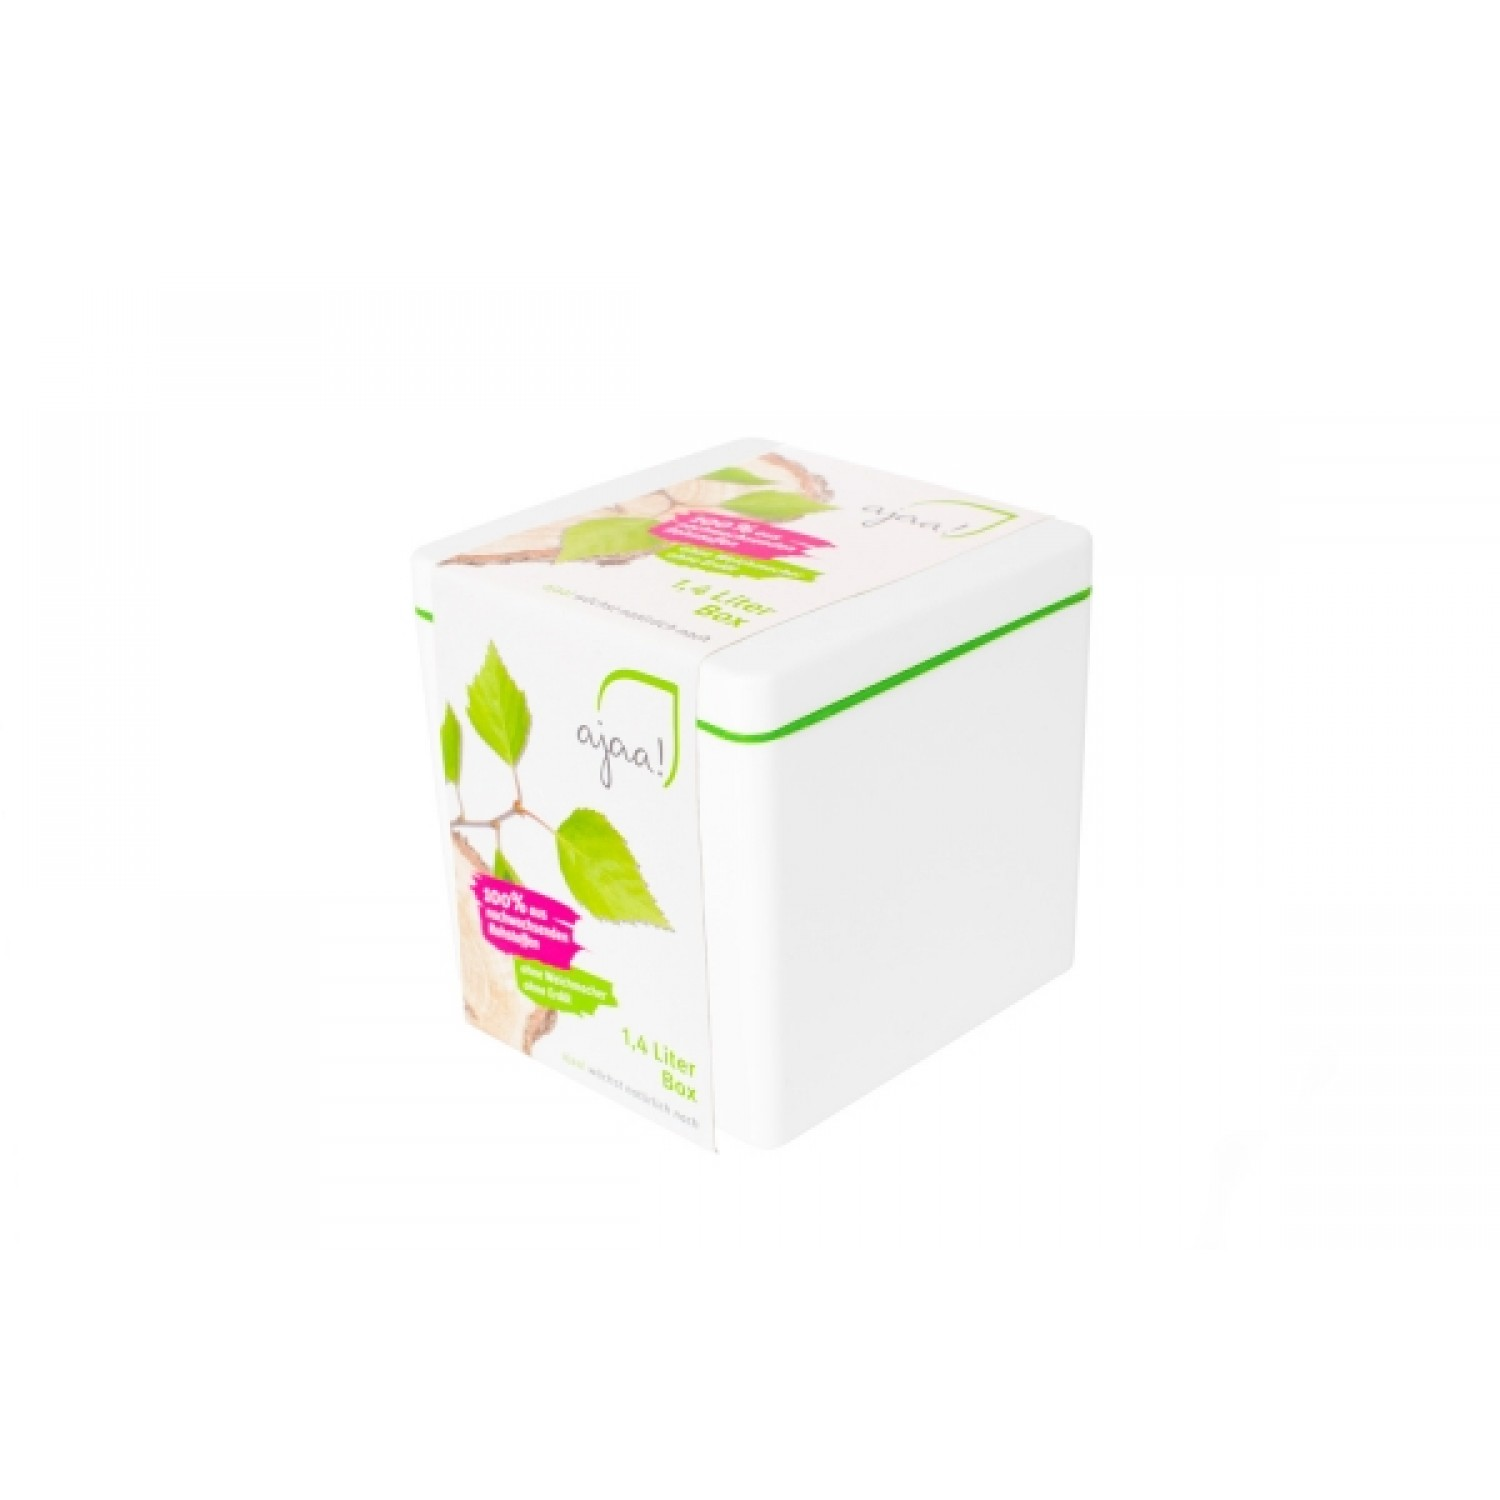 Square Storage Box 1.4 l by ajaa!